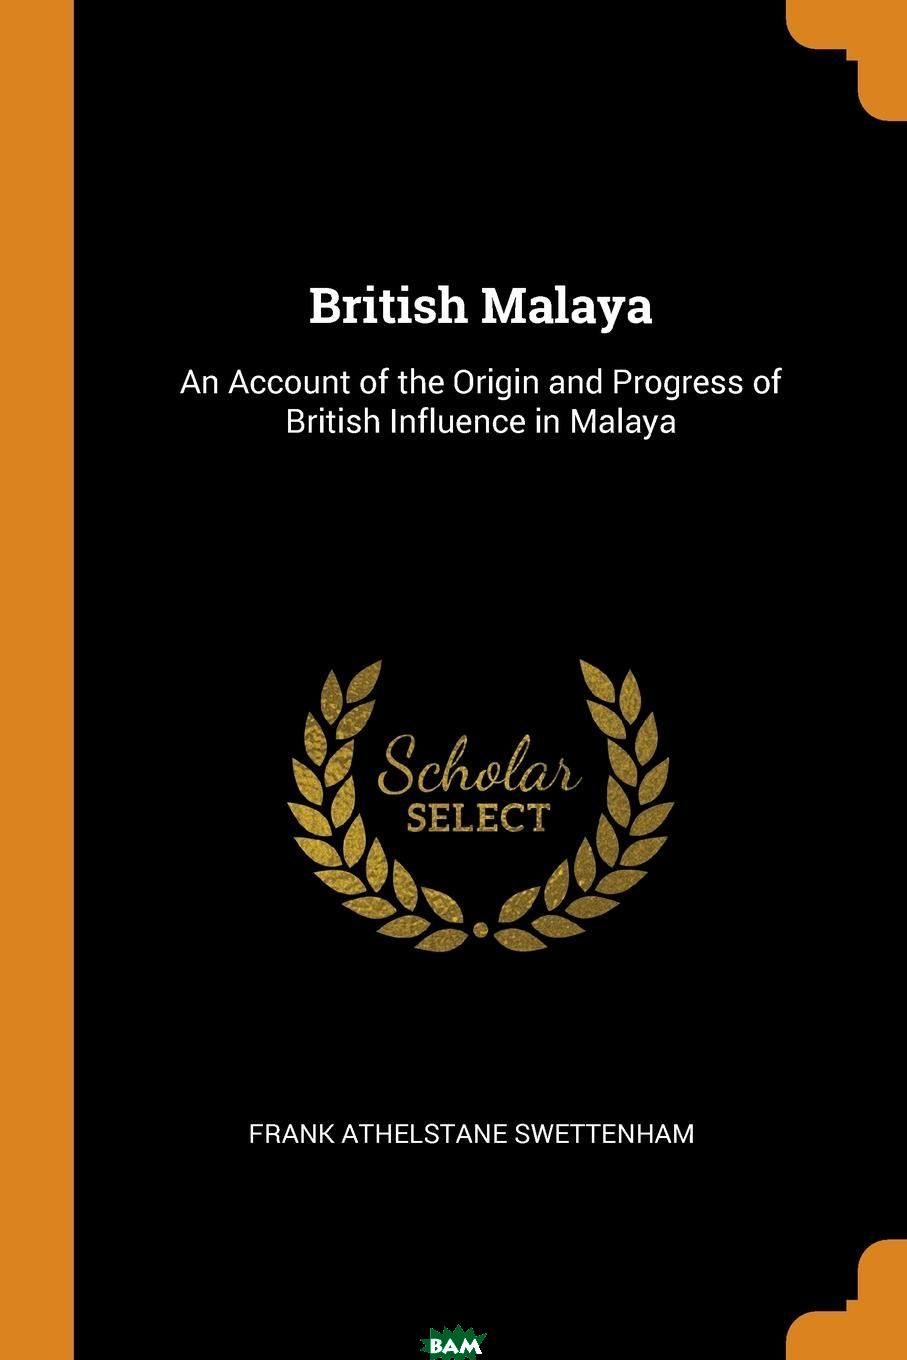 British Malaya. An Account of the Origin and Progress of British Influence in Malaya, Frank Athelstane Swettenham, 9780341916314  - купить со скидкой